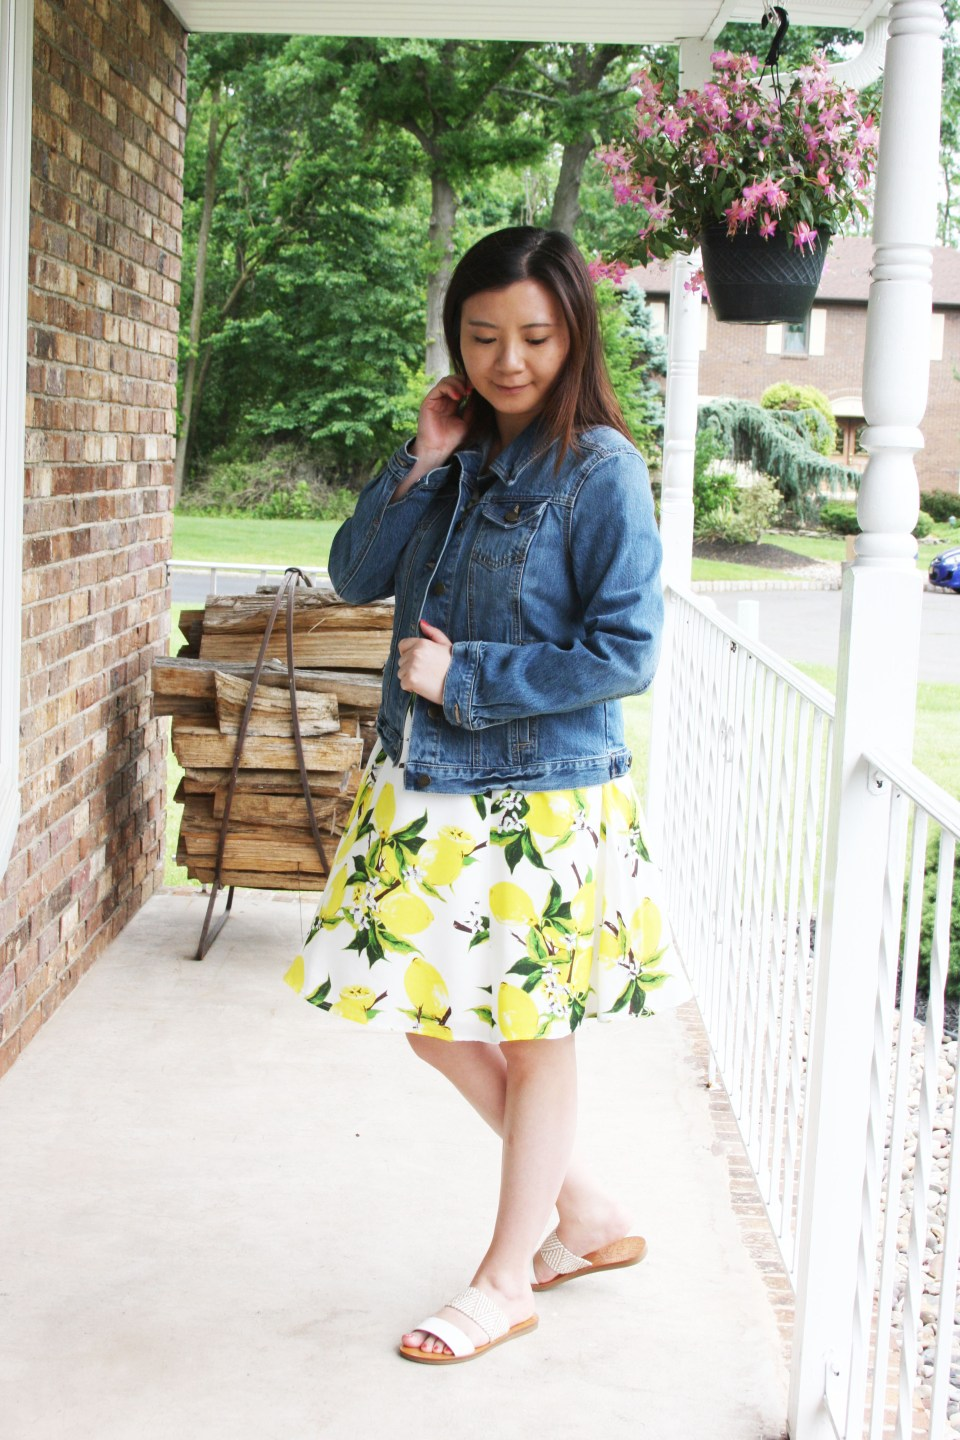 Lemon Print Dress + Denim Jacket 4